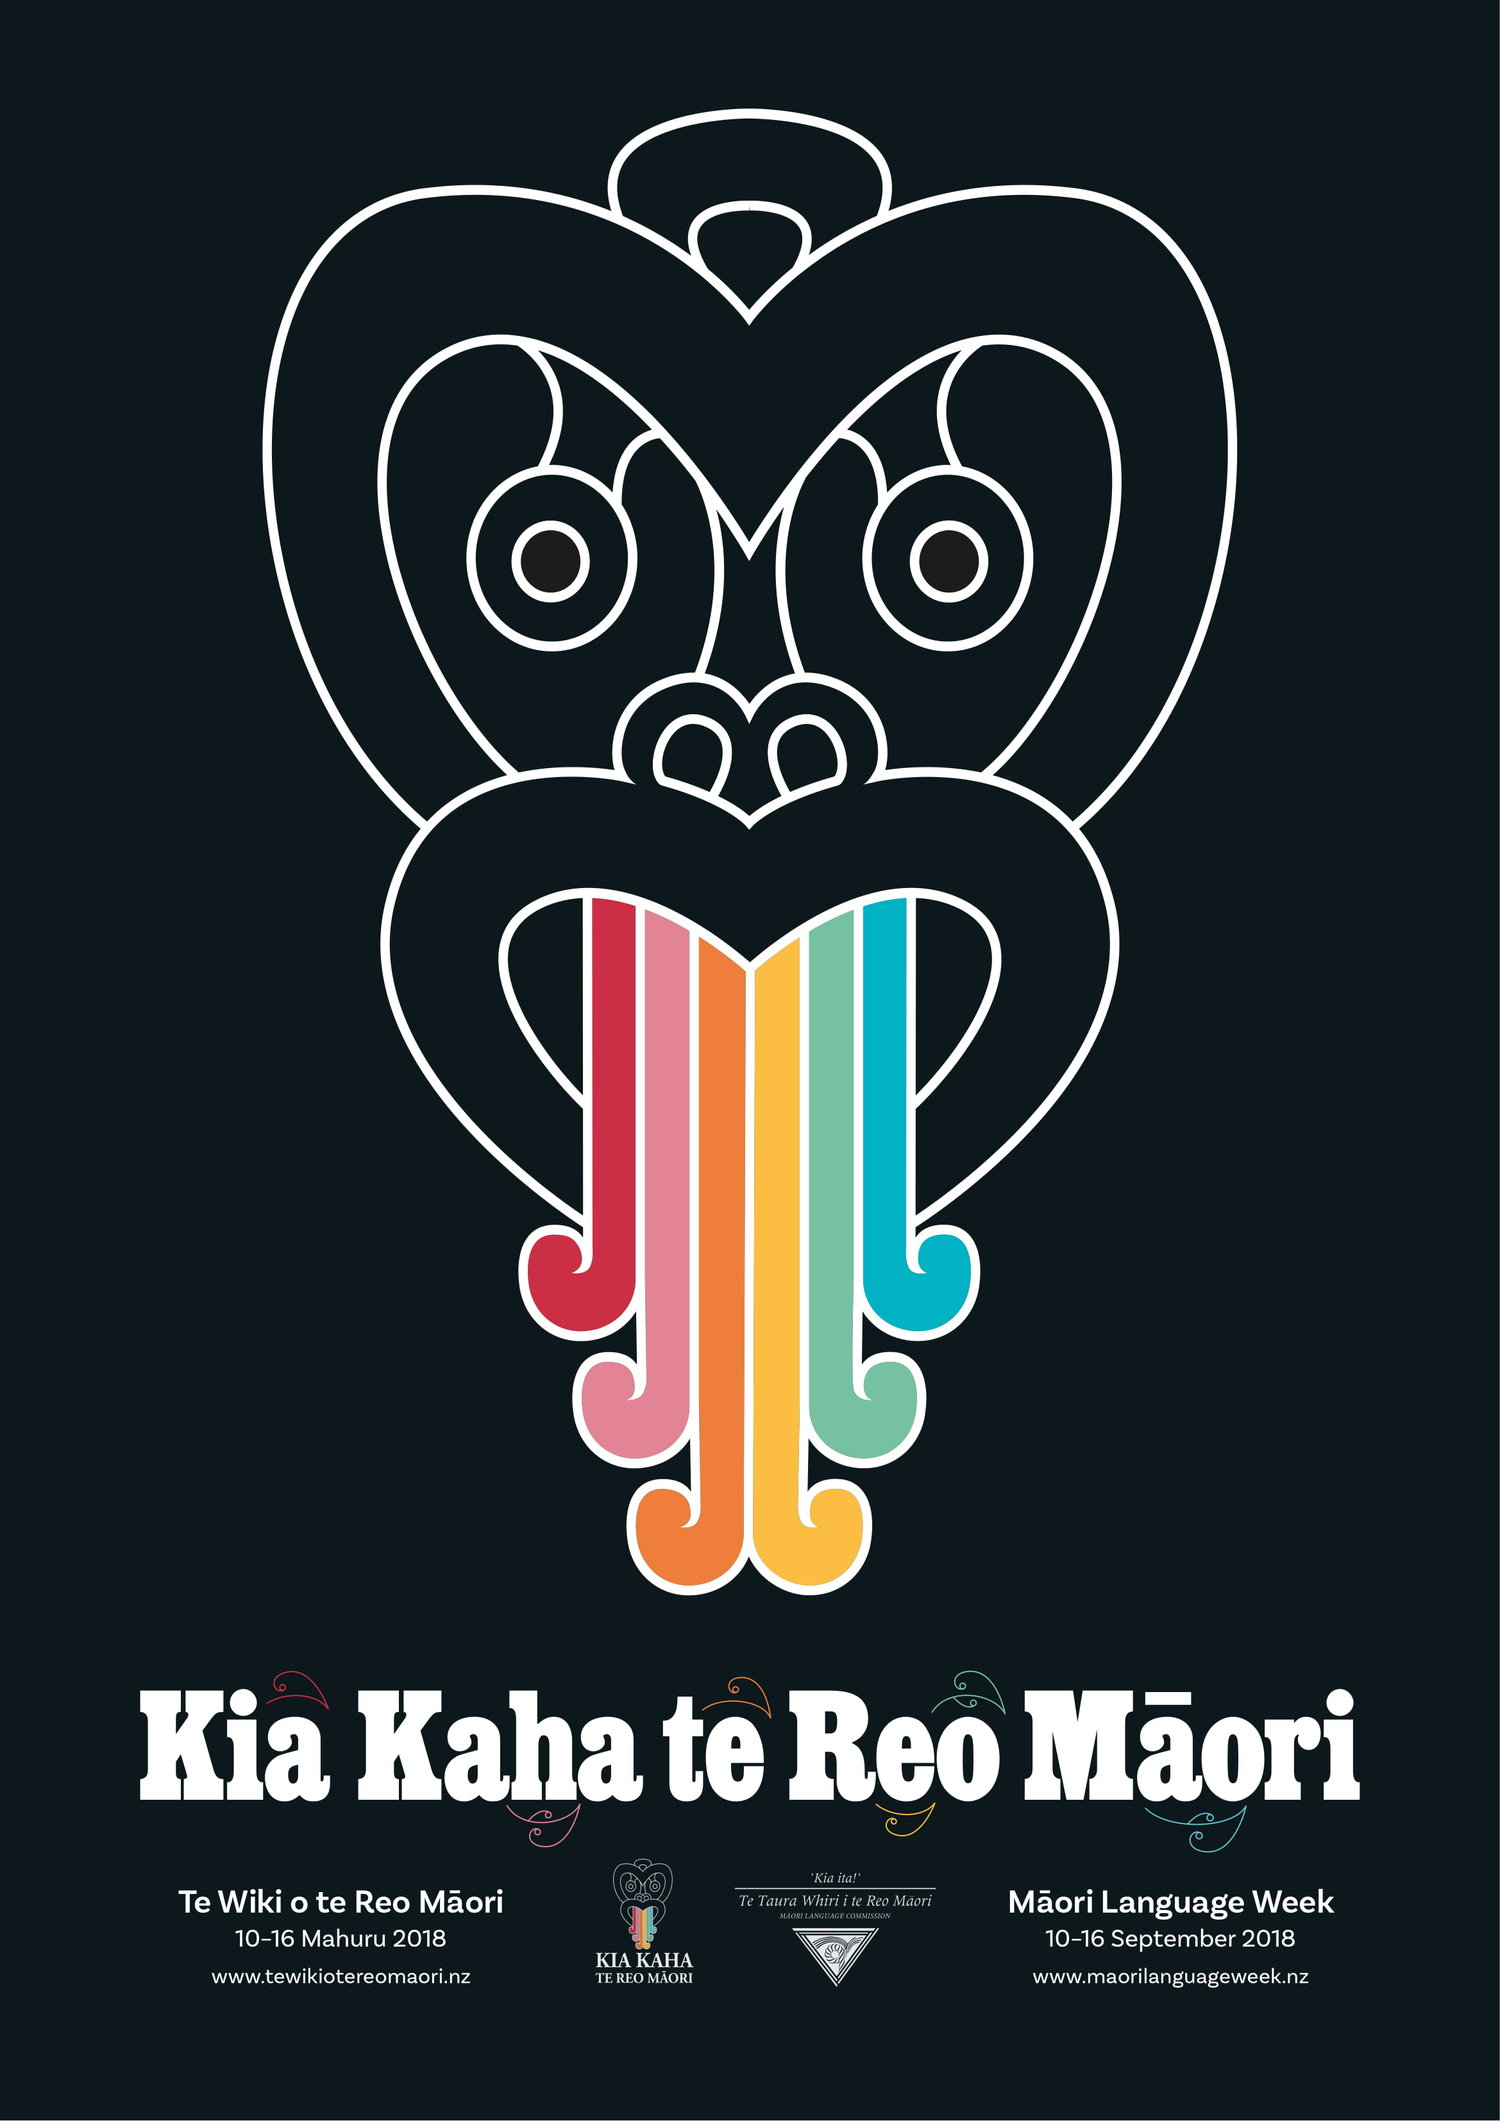 Kia-Kaha-POSTER-SET-on-black-1